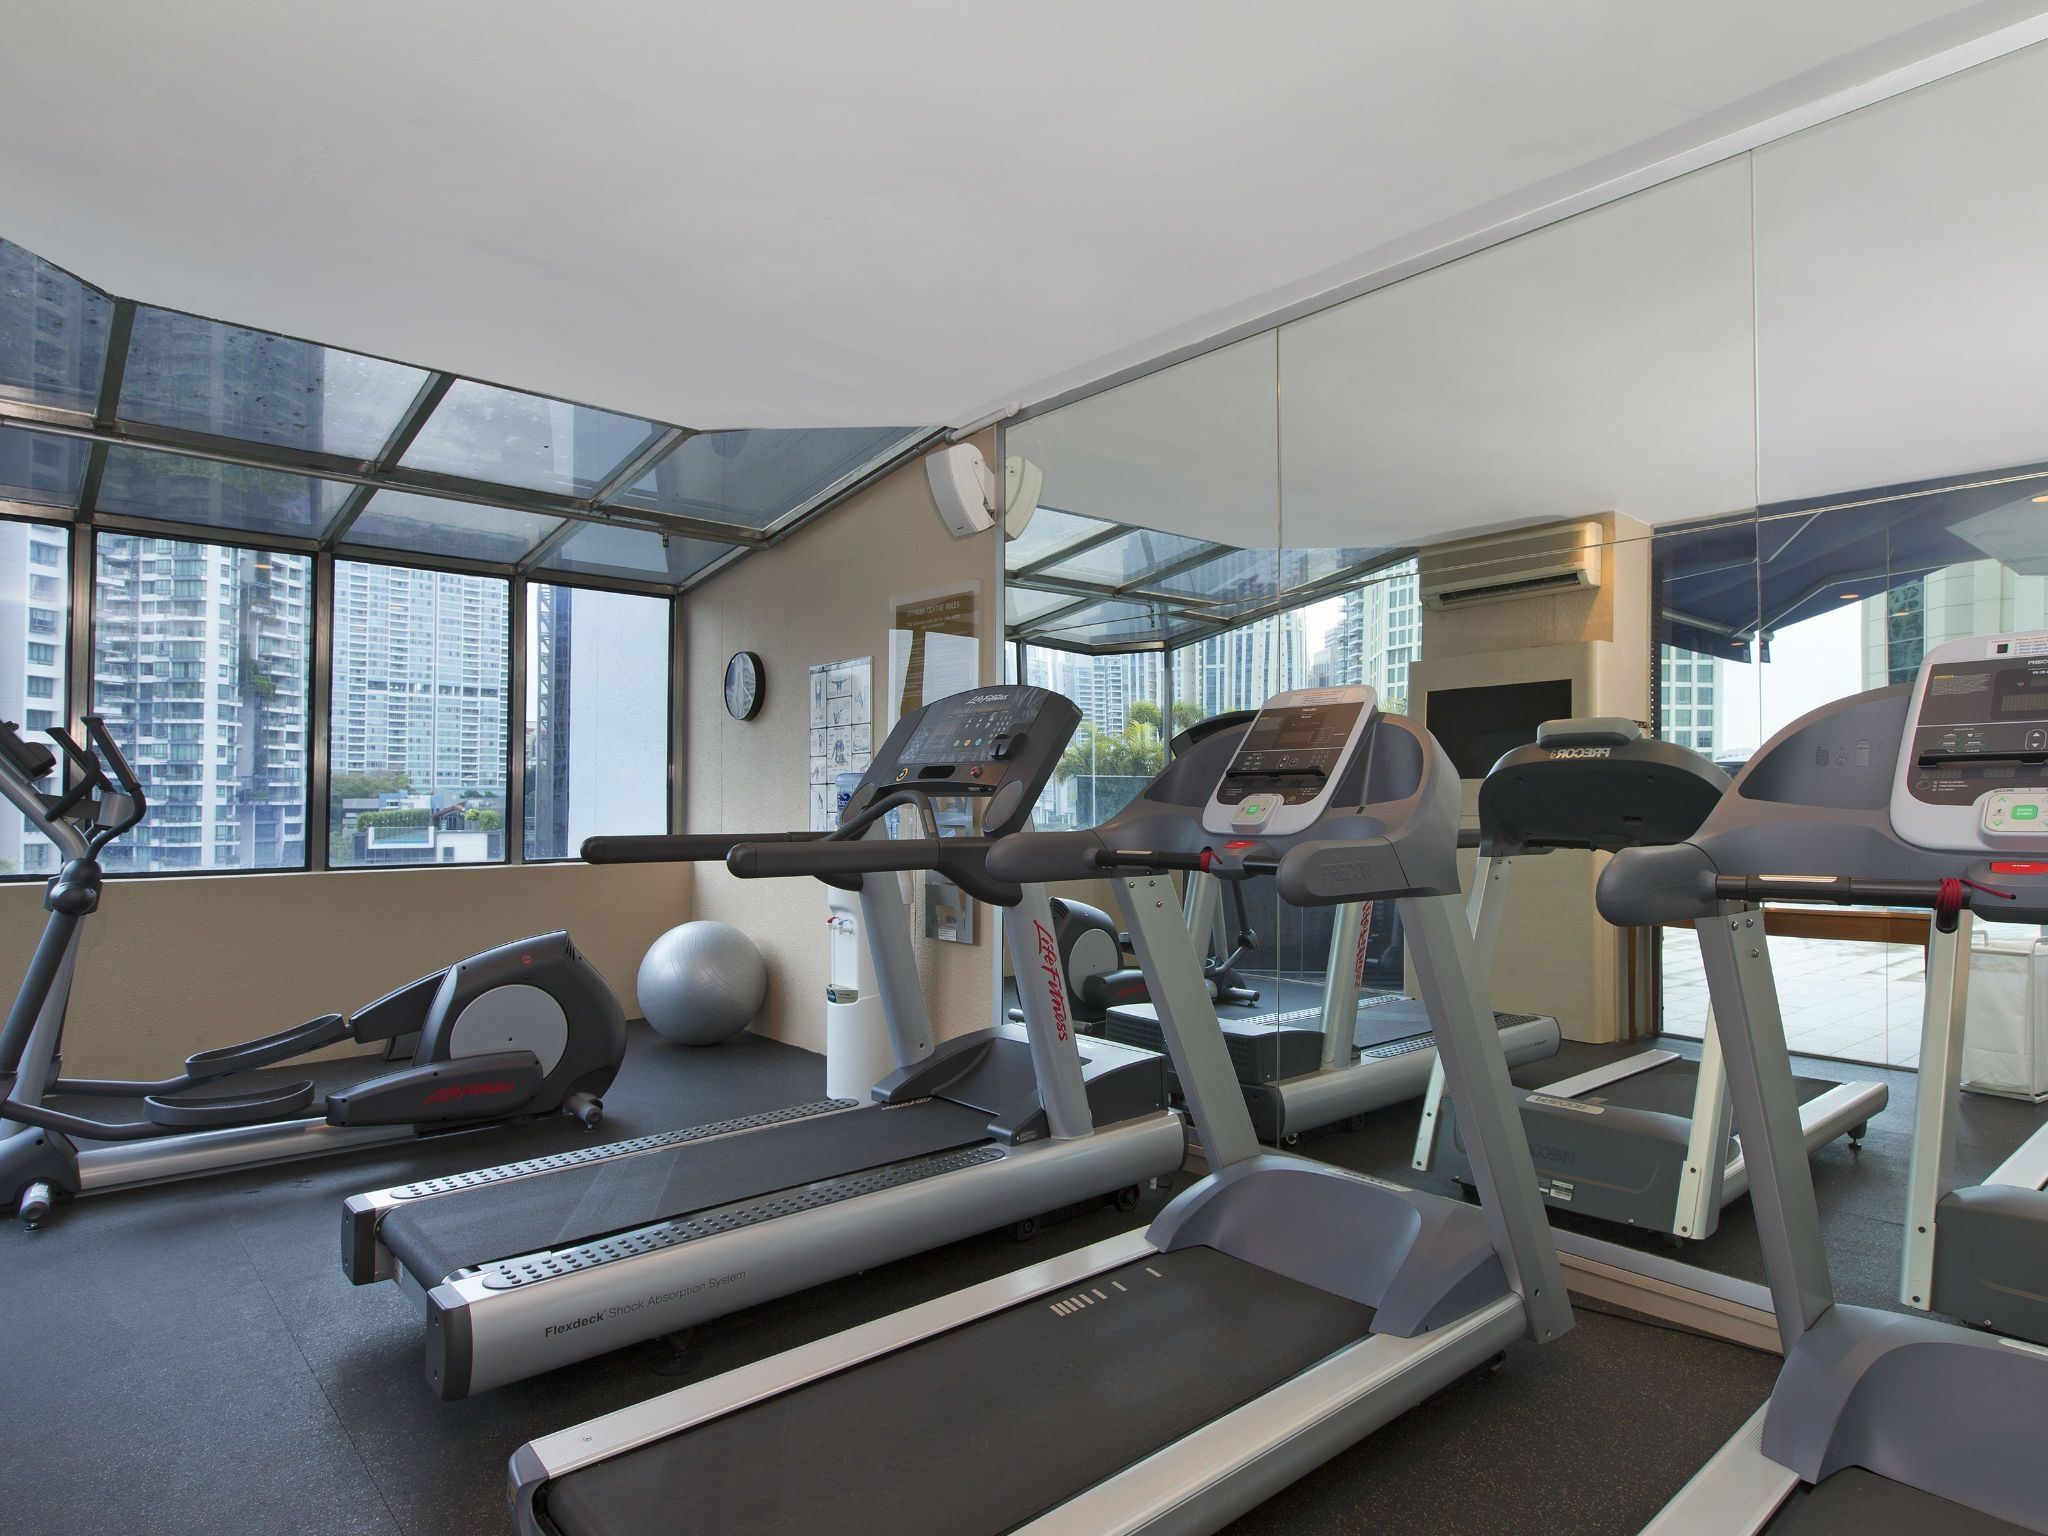 Our Fitness Centre is open 24-hour